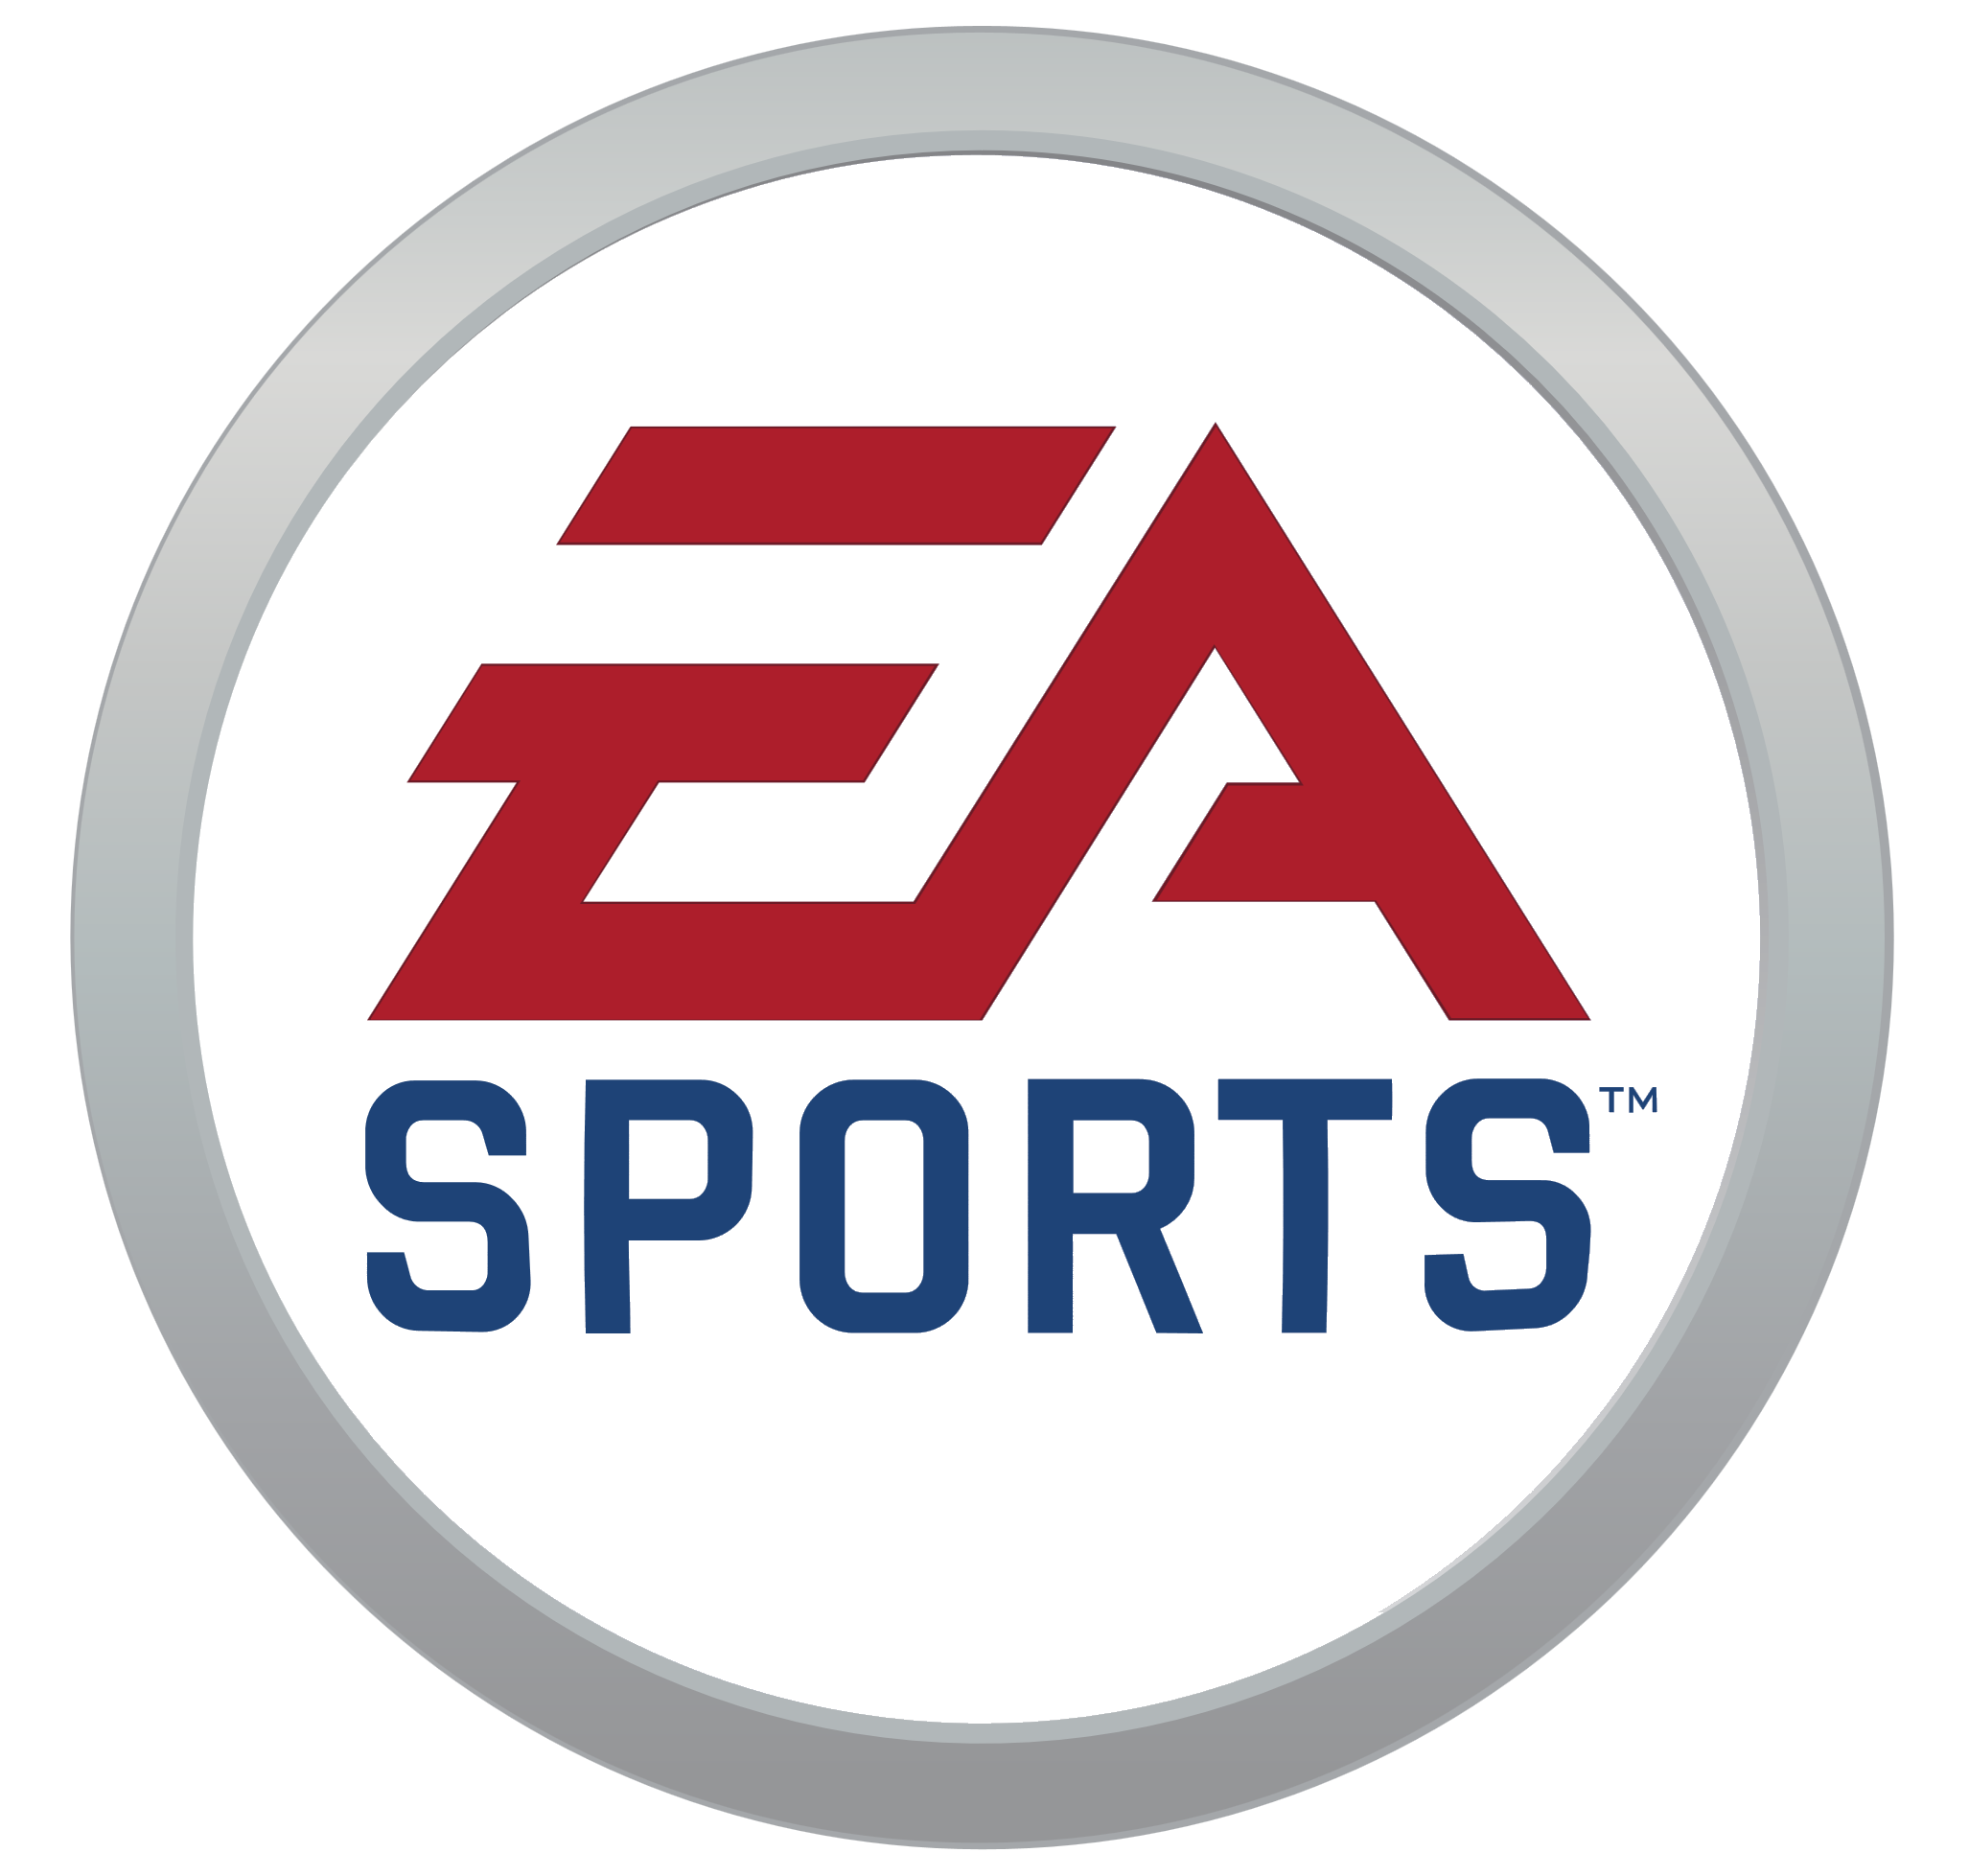 EA_Sports_logo_logotype.png